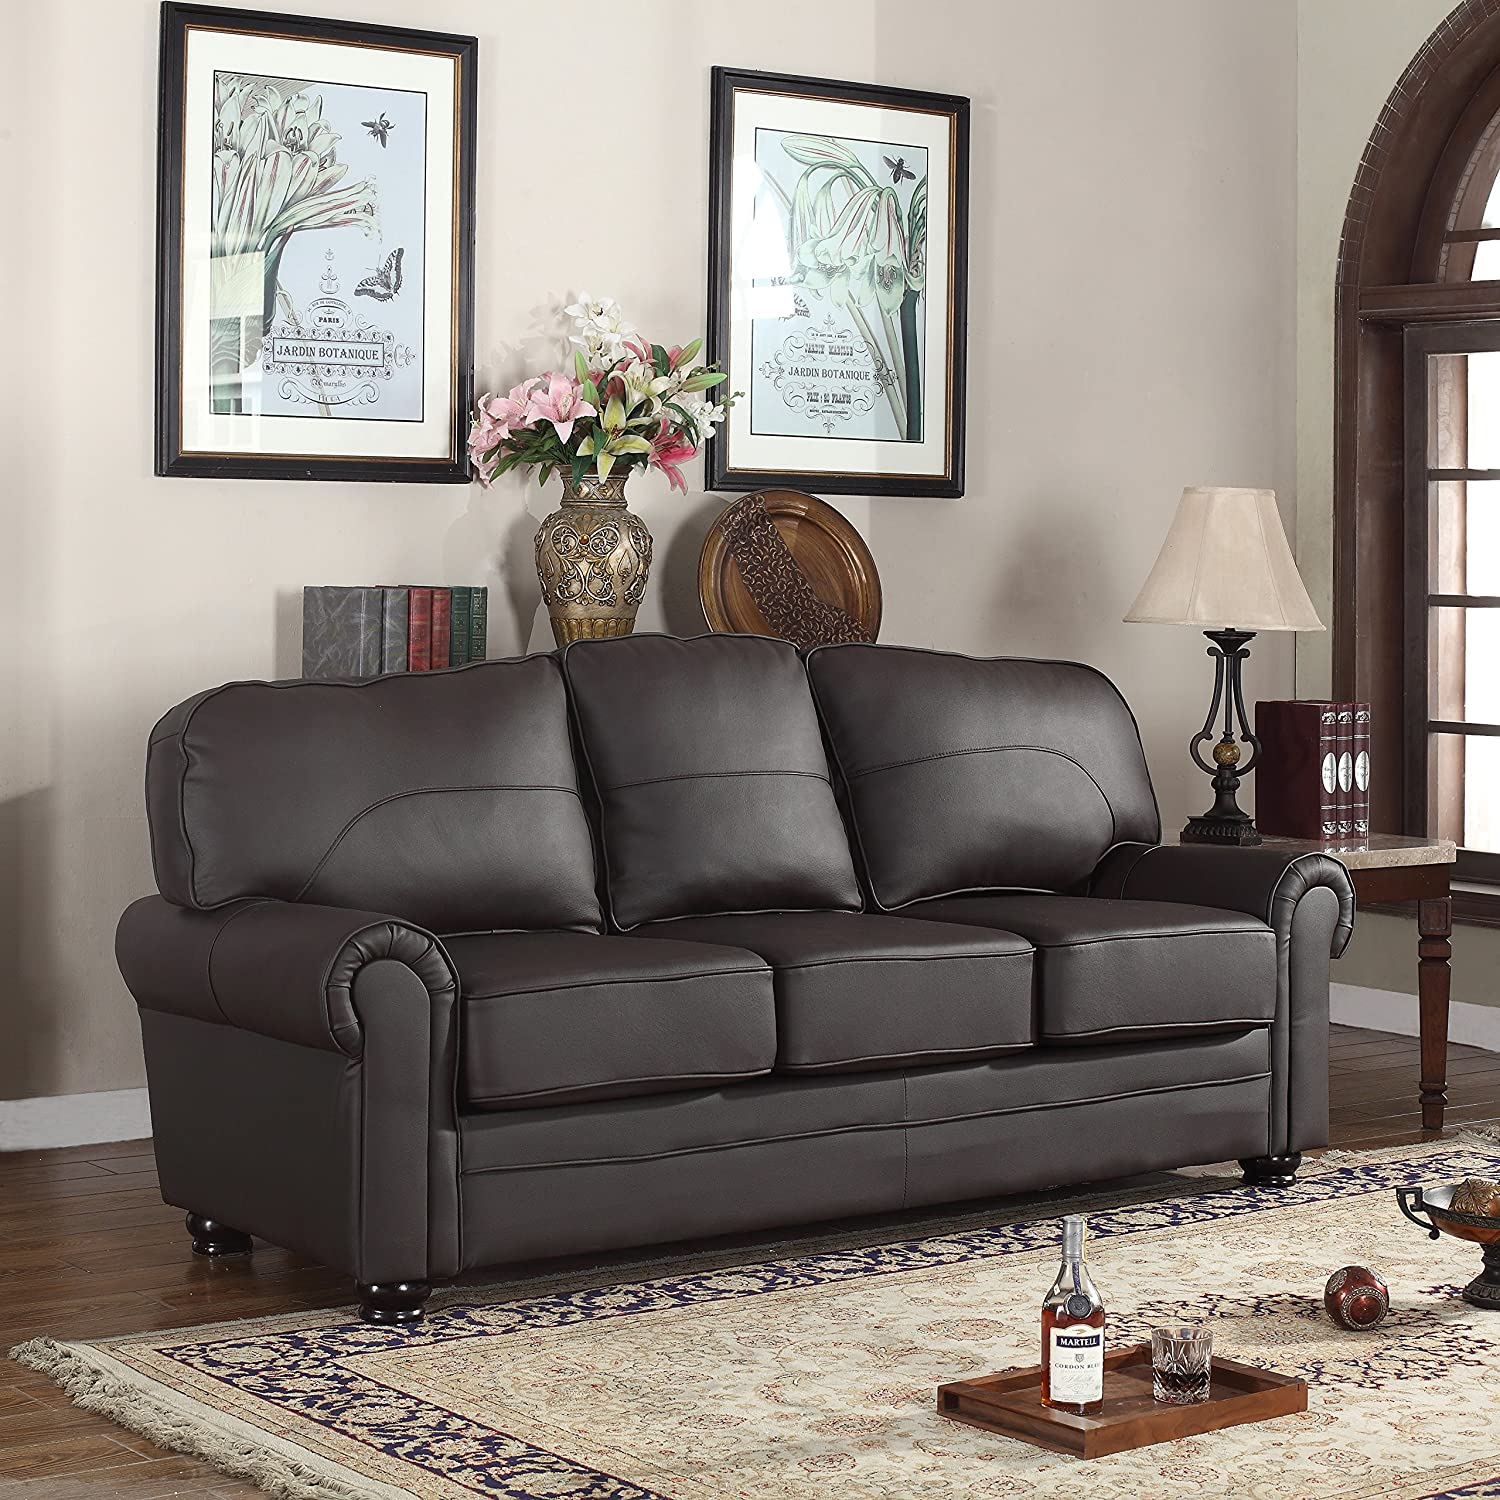 Divano Roma Furniture Traditional Collection - 3 Piece Living Room Set - Brown REAL Leather Upholstered Sofa - Love